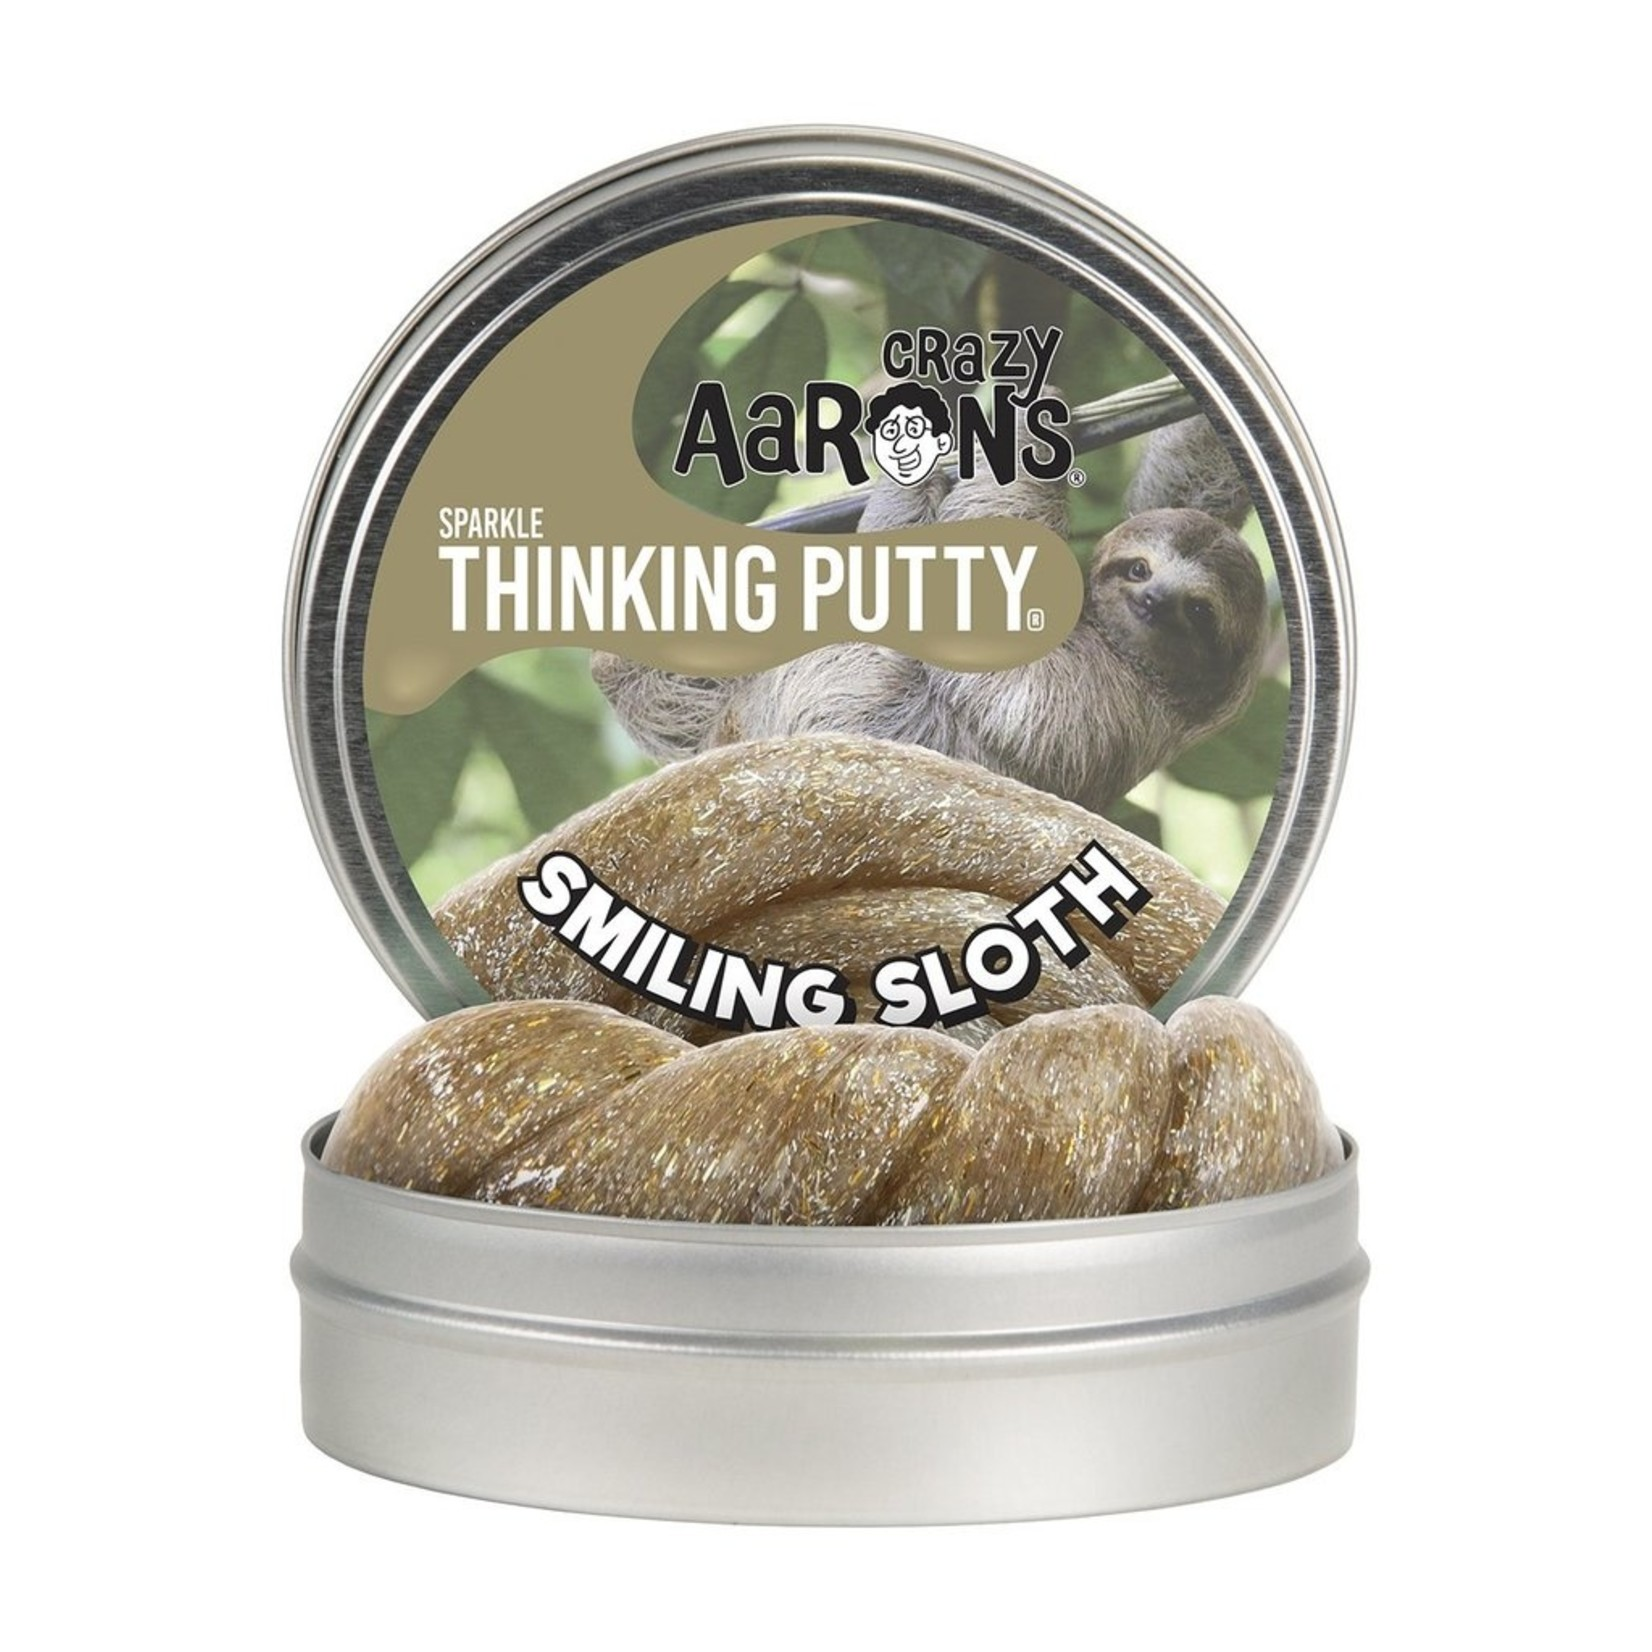 Crazy Aaron's Crazy Aaron's Smiling Sloth Thinking Putty